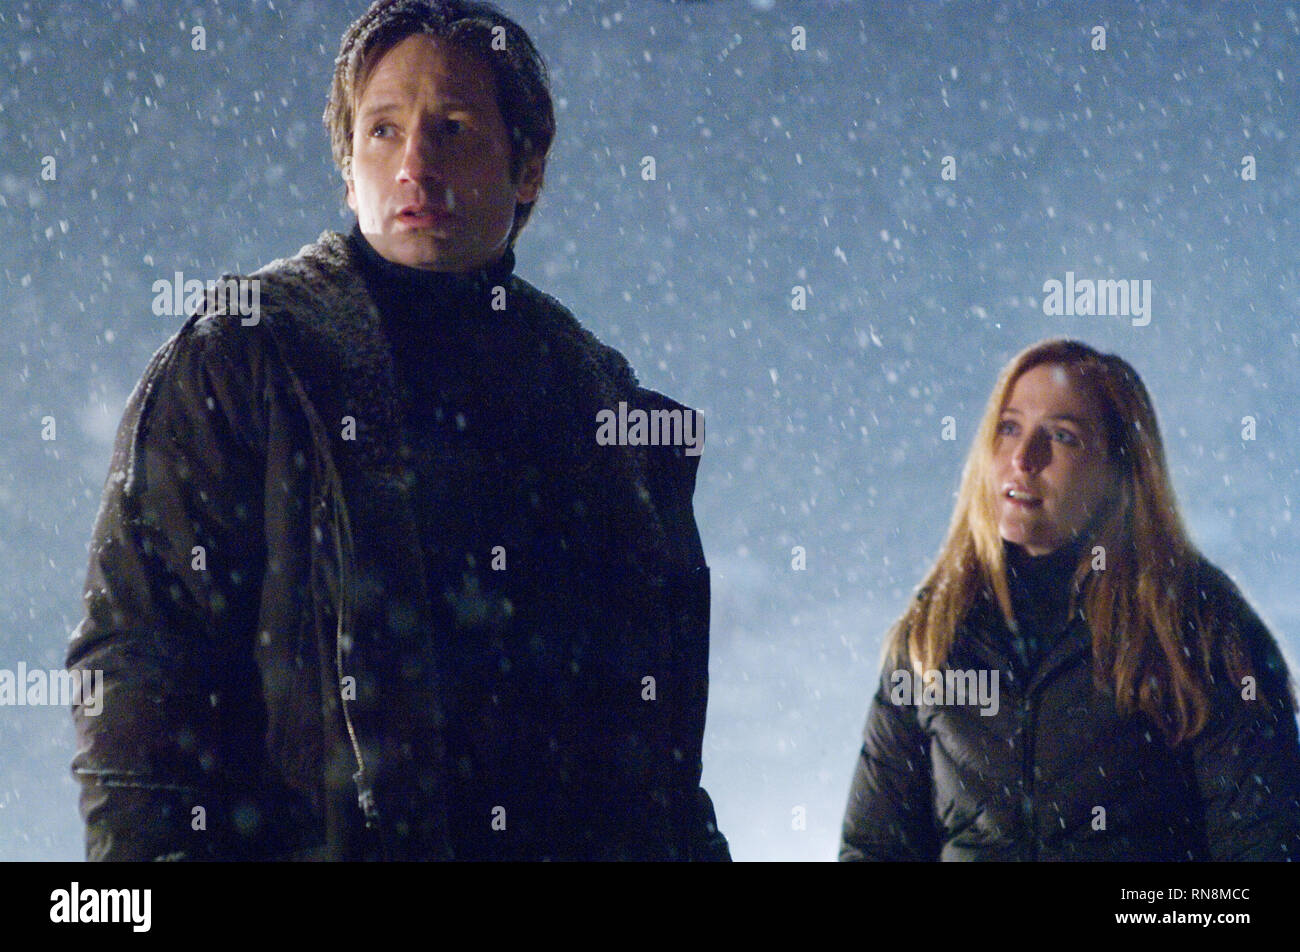 DUCHOVNY,ANDERSON, THE X FILES: I WANT TO BELIEVE, 2008 - Stock Image